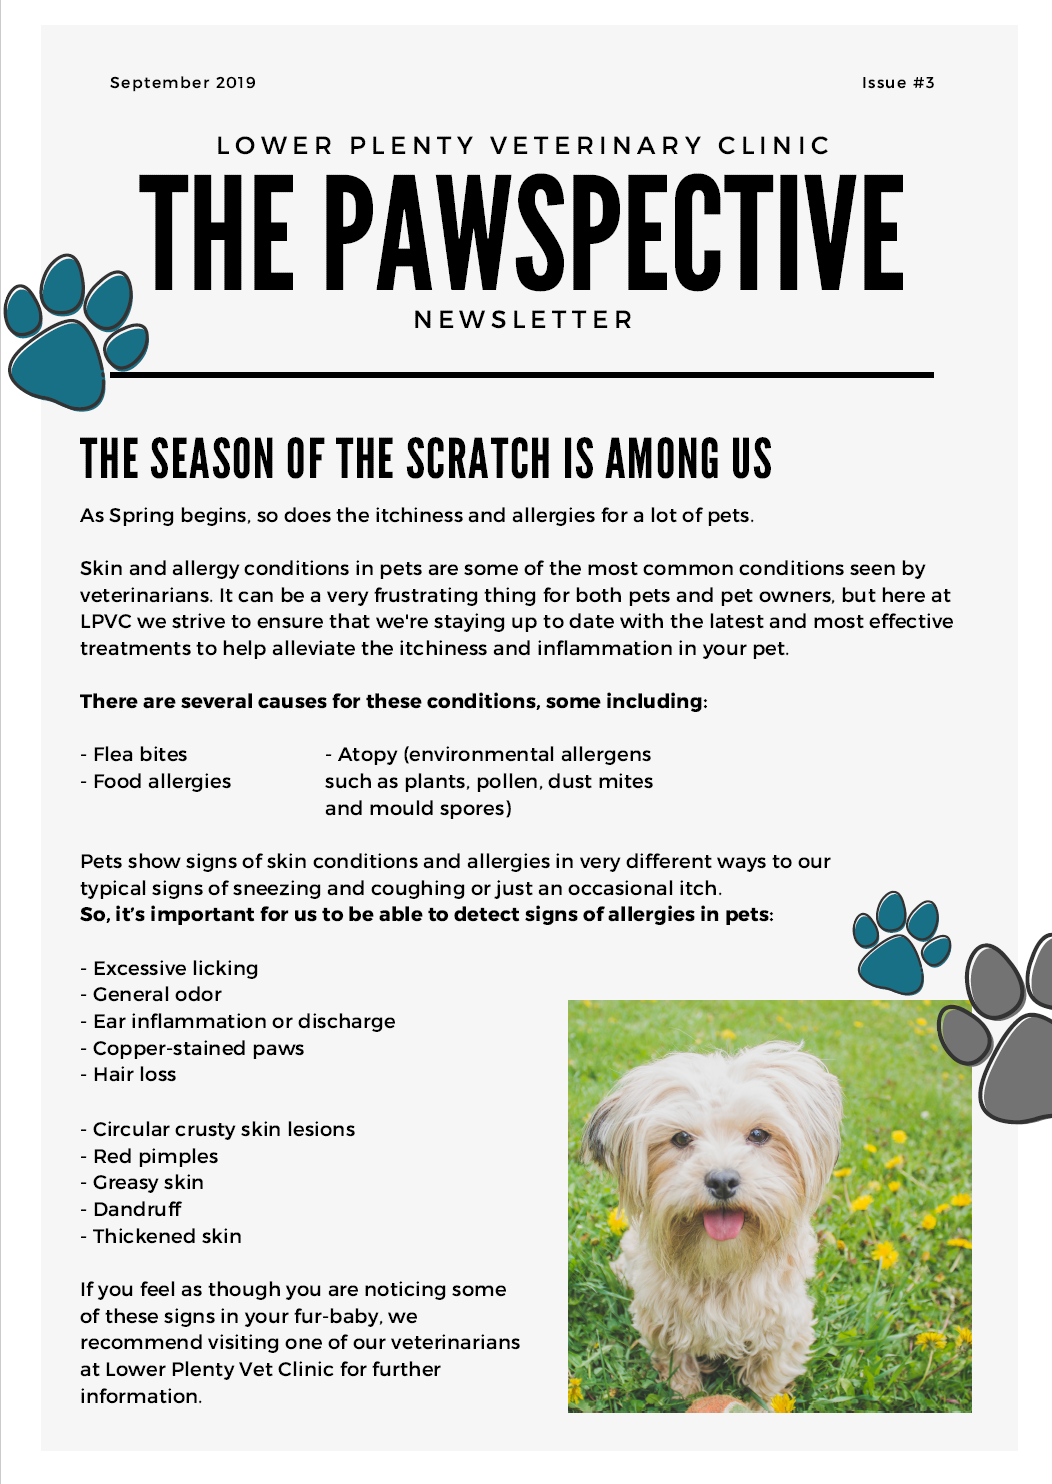 The Pawspective